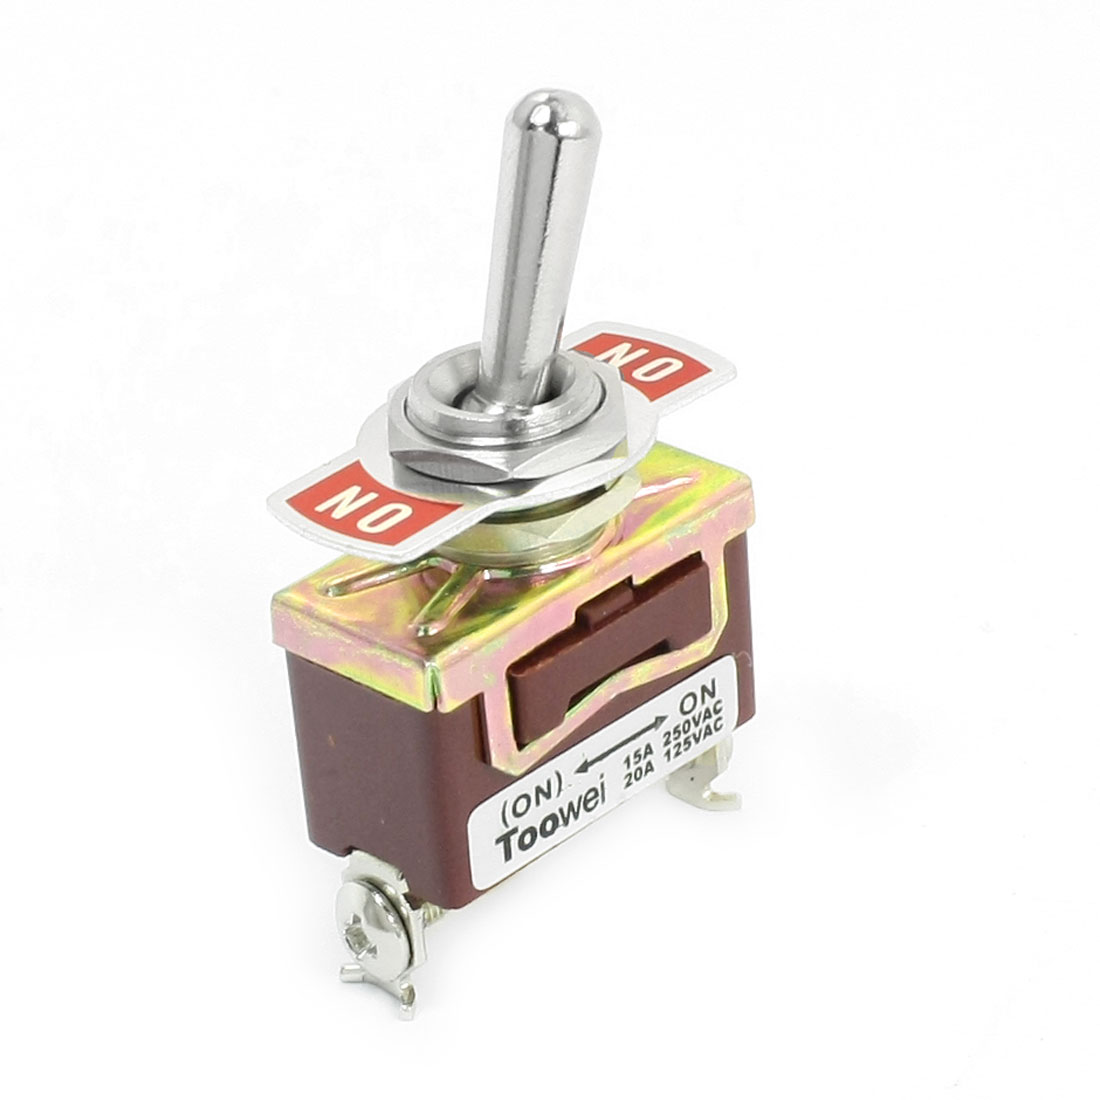 12mm Panel Mounted SPDT ON/ON Momentary Toggle Switch AC 250V 15A T701DW